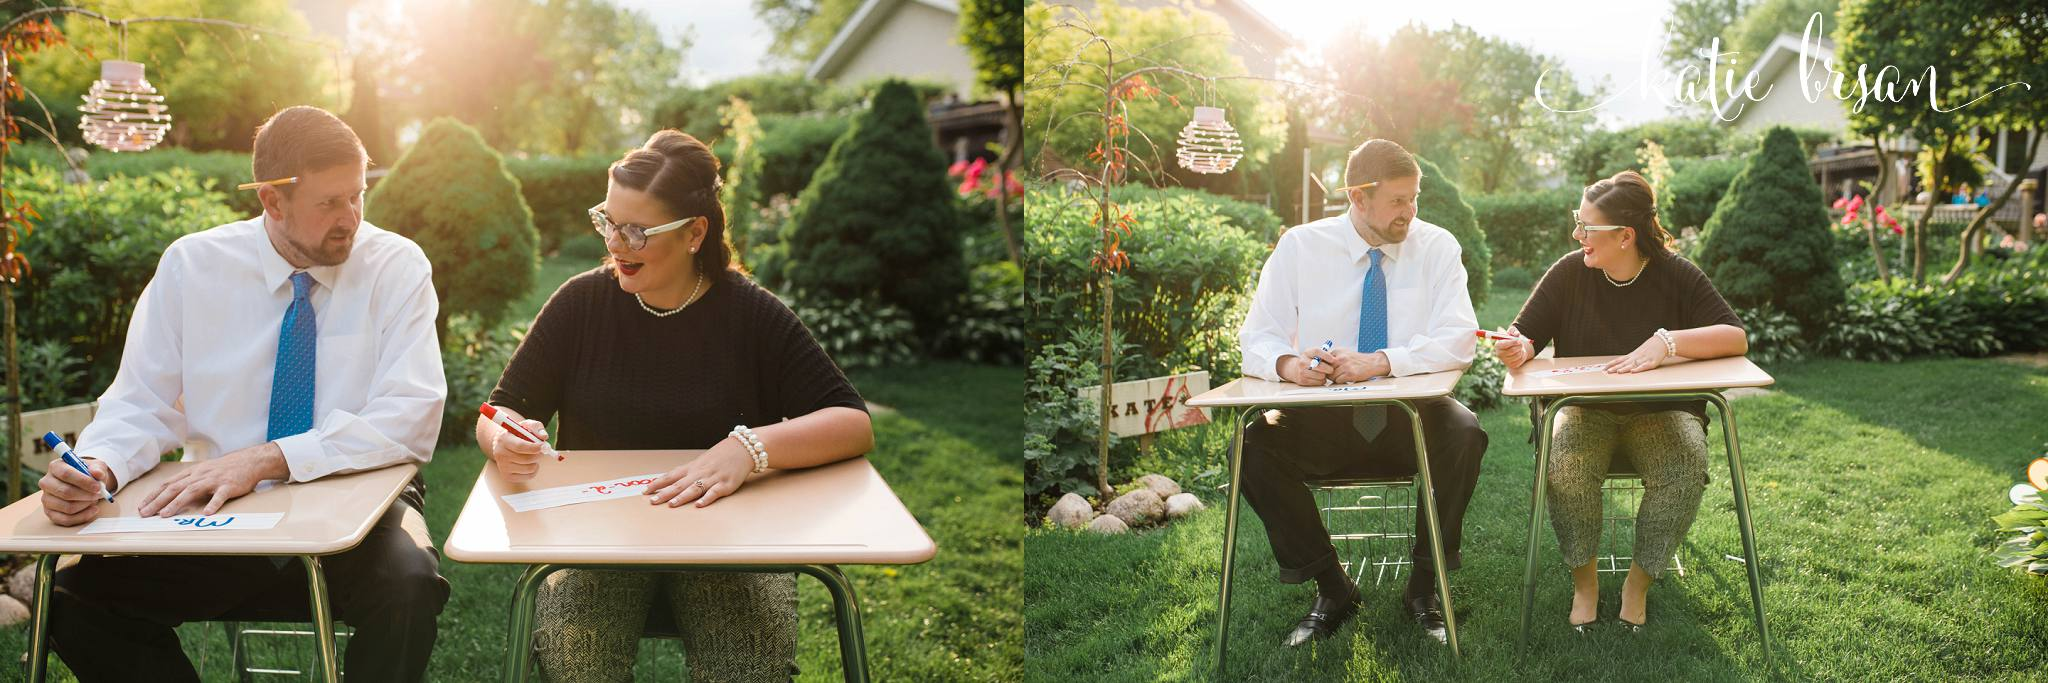 KatieBrsan-HomerGlen-NewLenox-EngagementSession-HadleyValley-TeacherEngagementSession-ChicagoWeddingPhotographer_0577.jpg